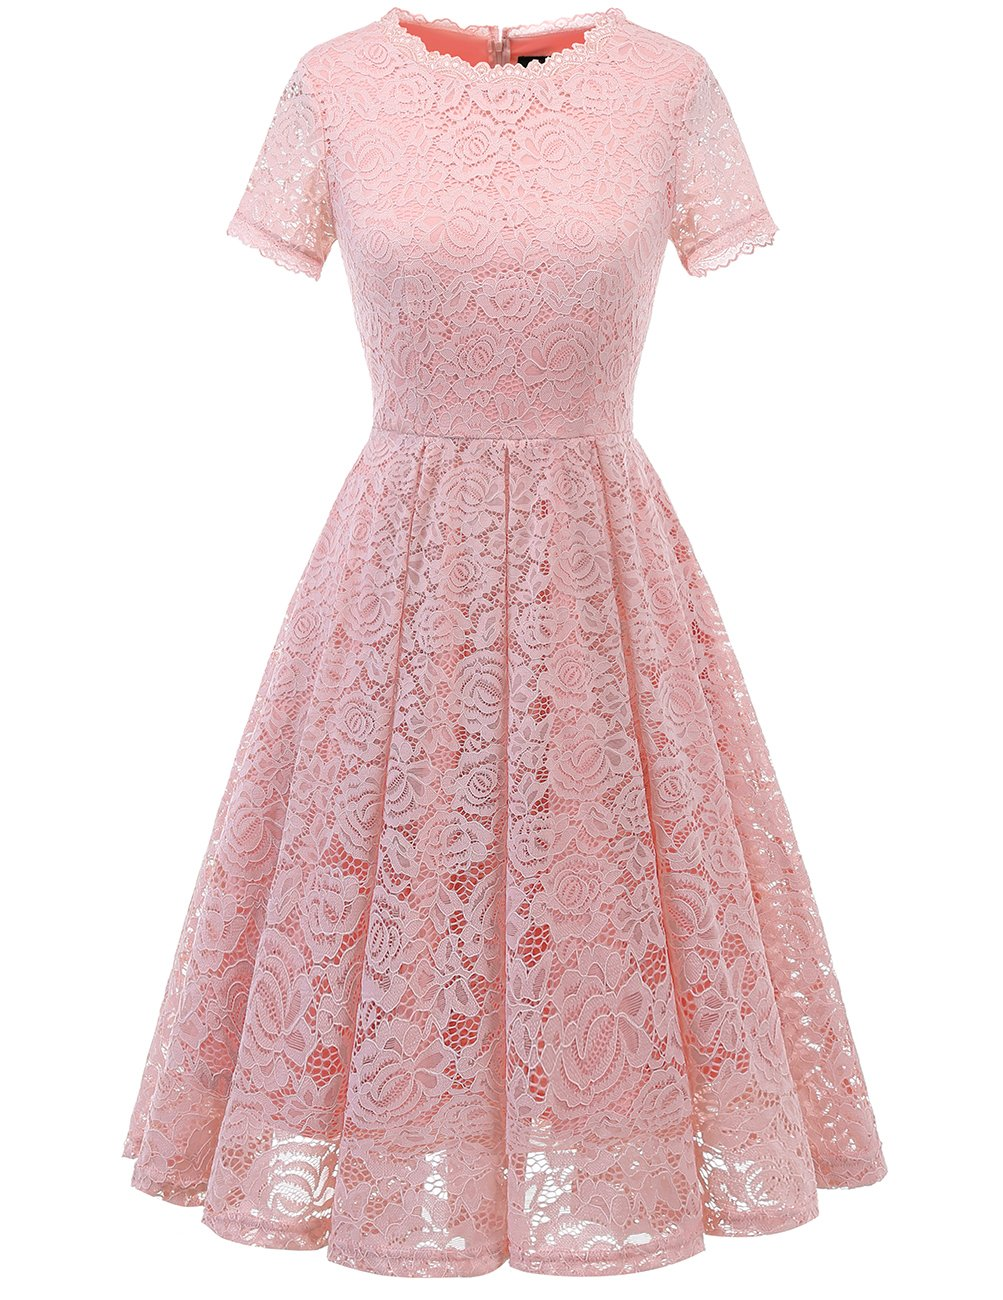 DRESSTELLS Women's Homecoming Vintage Tea Dress Floral Lace Cocktail Formal Swing Dress Blush XL by DRESSTELLS